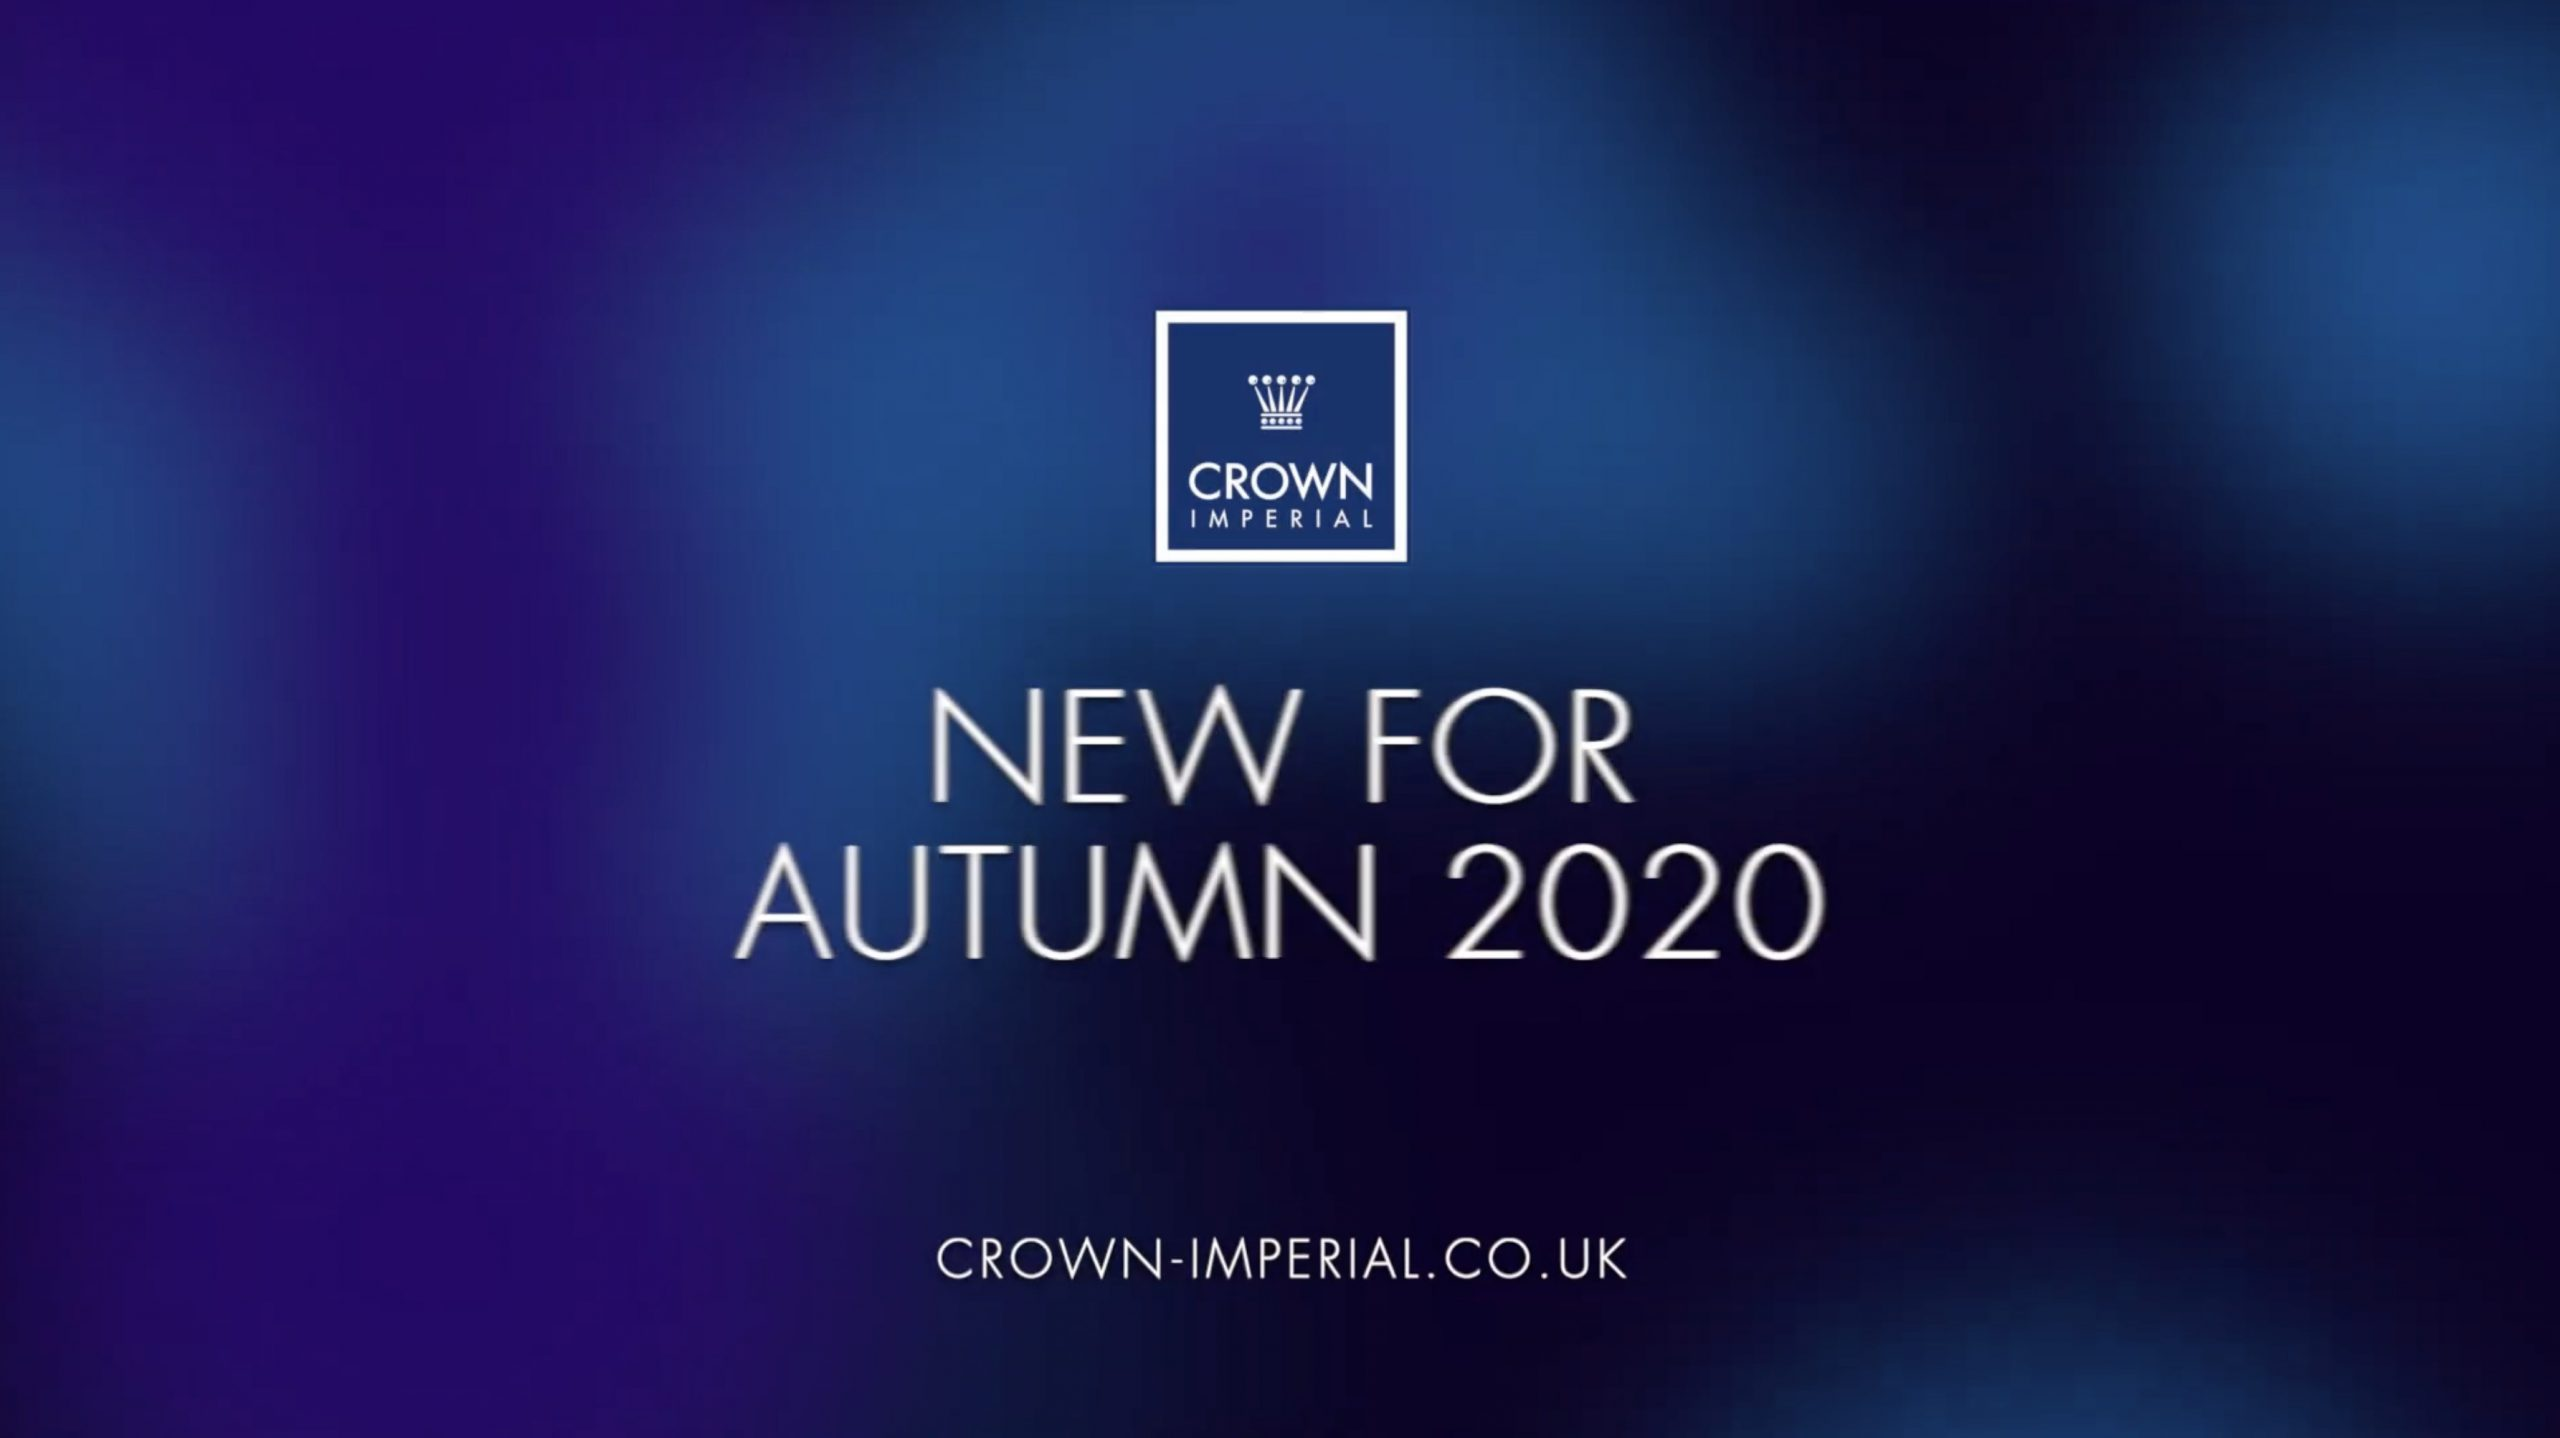 NEW FOR AUTUMN 2020